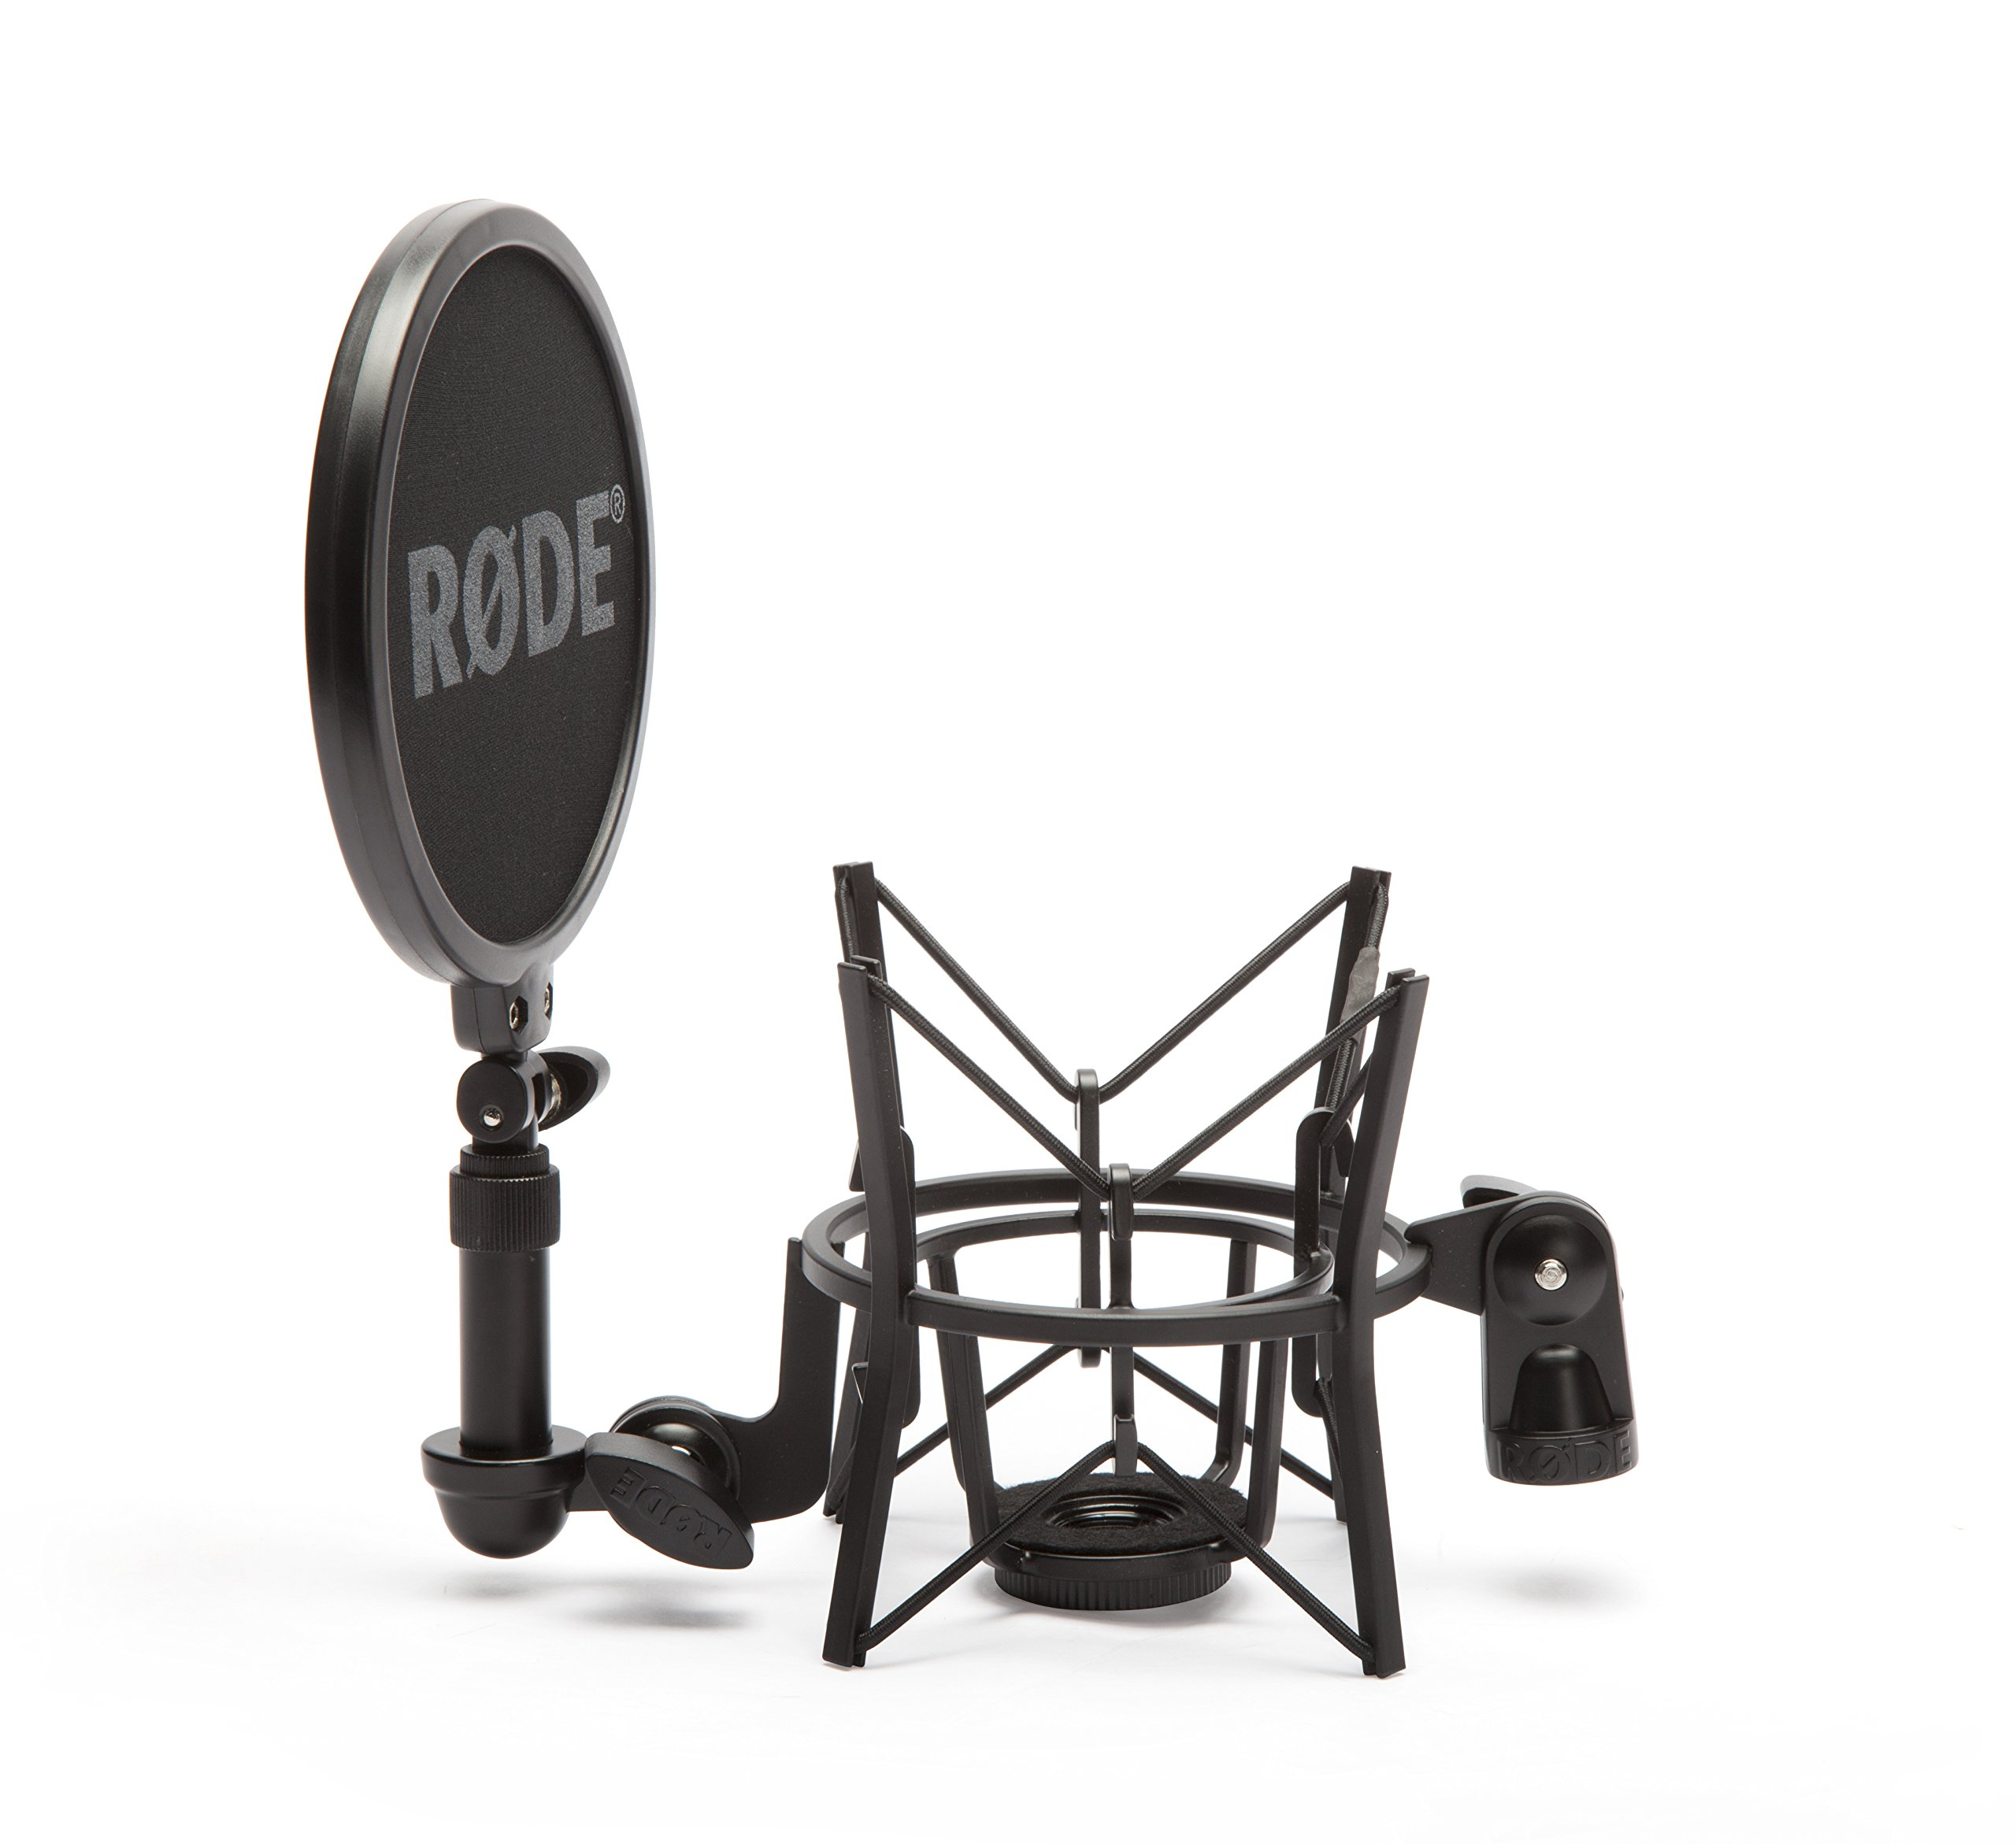 Rode SM6 Microphone Shock Mount with Integrated Pop Shield